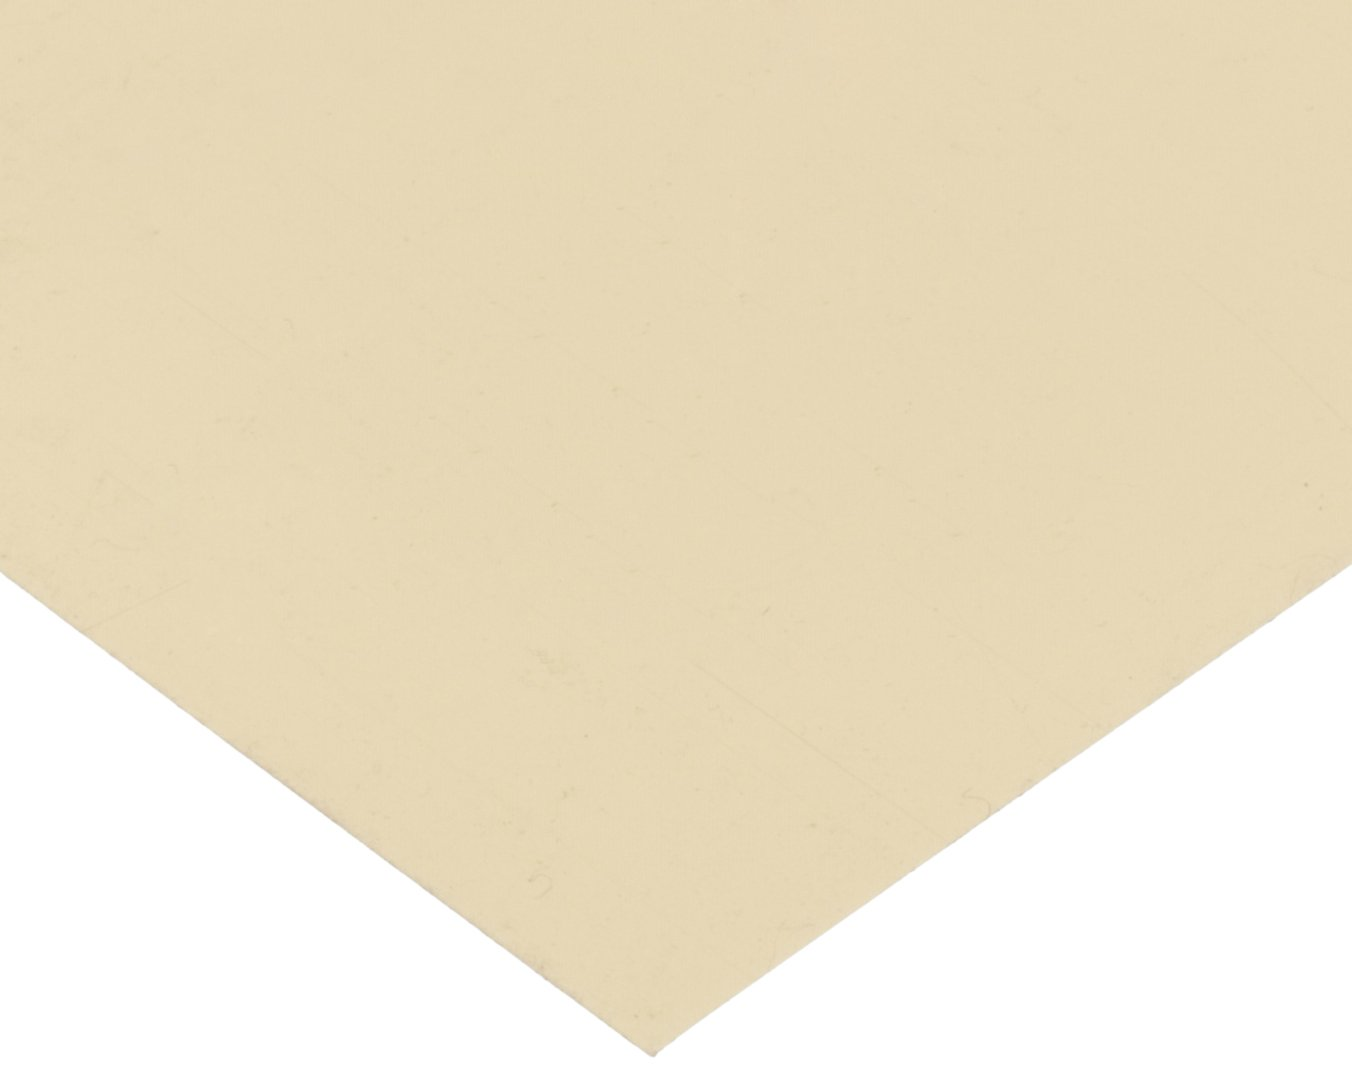 Polyester Shim Stock, Flat Sheet, Tan, 0.004'' Thickness, 5'' Width, 20'' Length (Pack of 10) by Small Parts